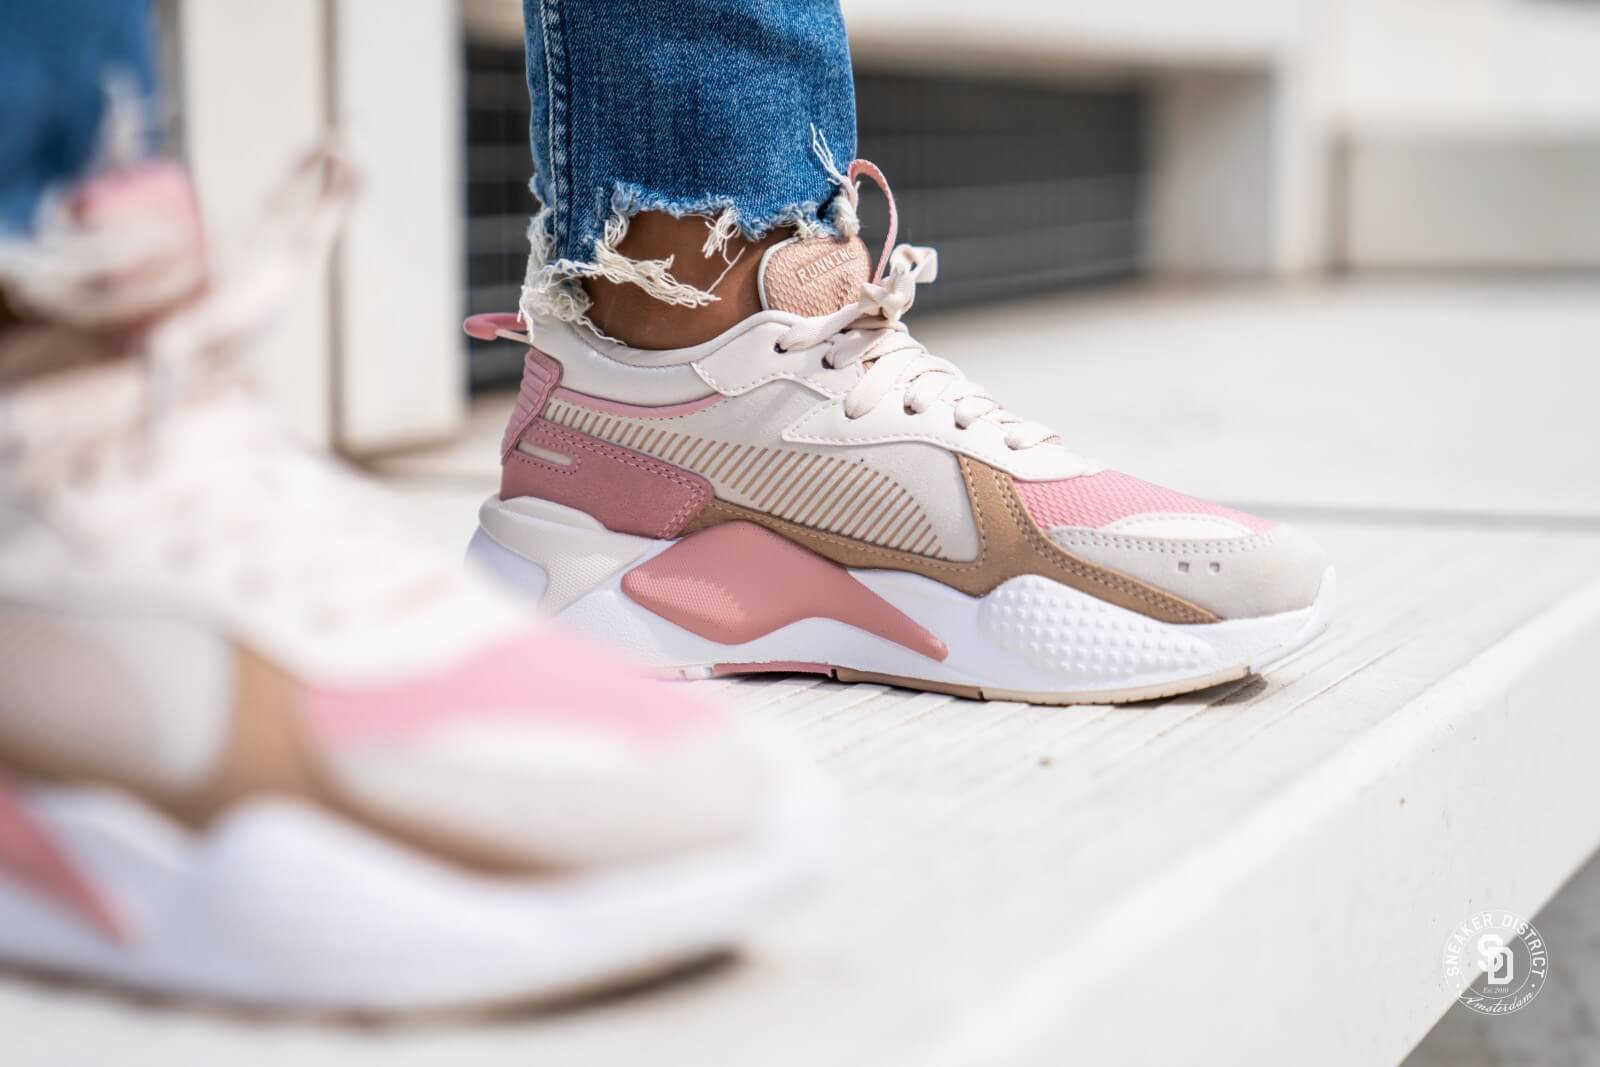 puma wedding shoes, OFF 75%,Latest trends,